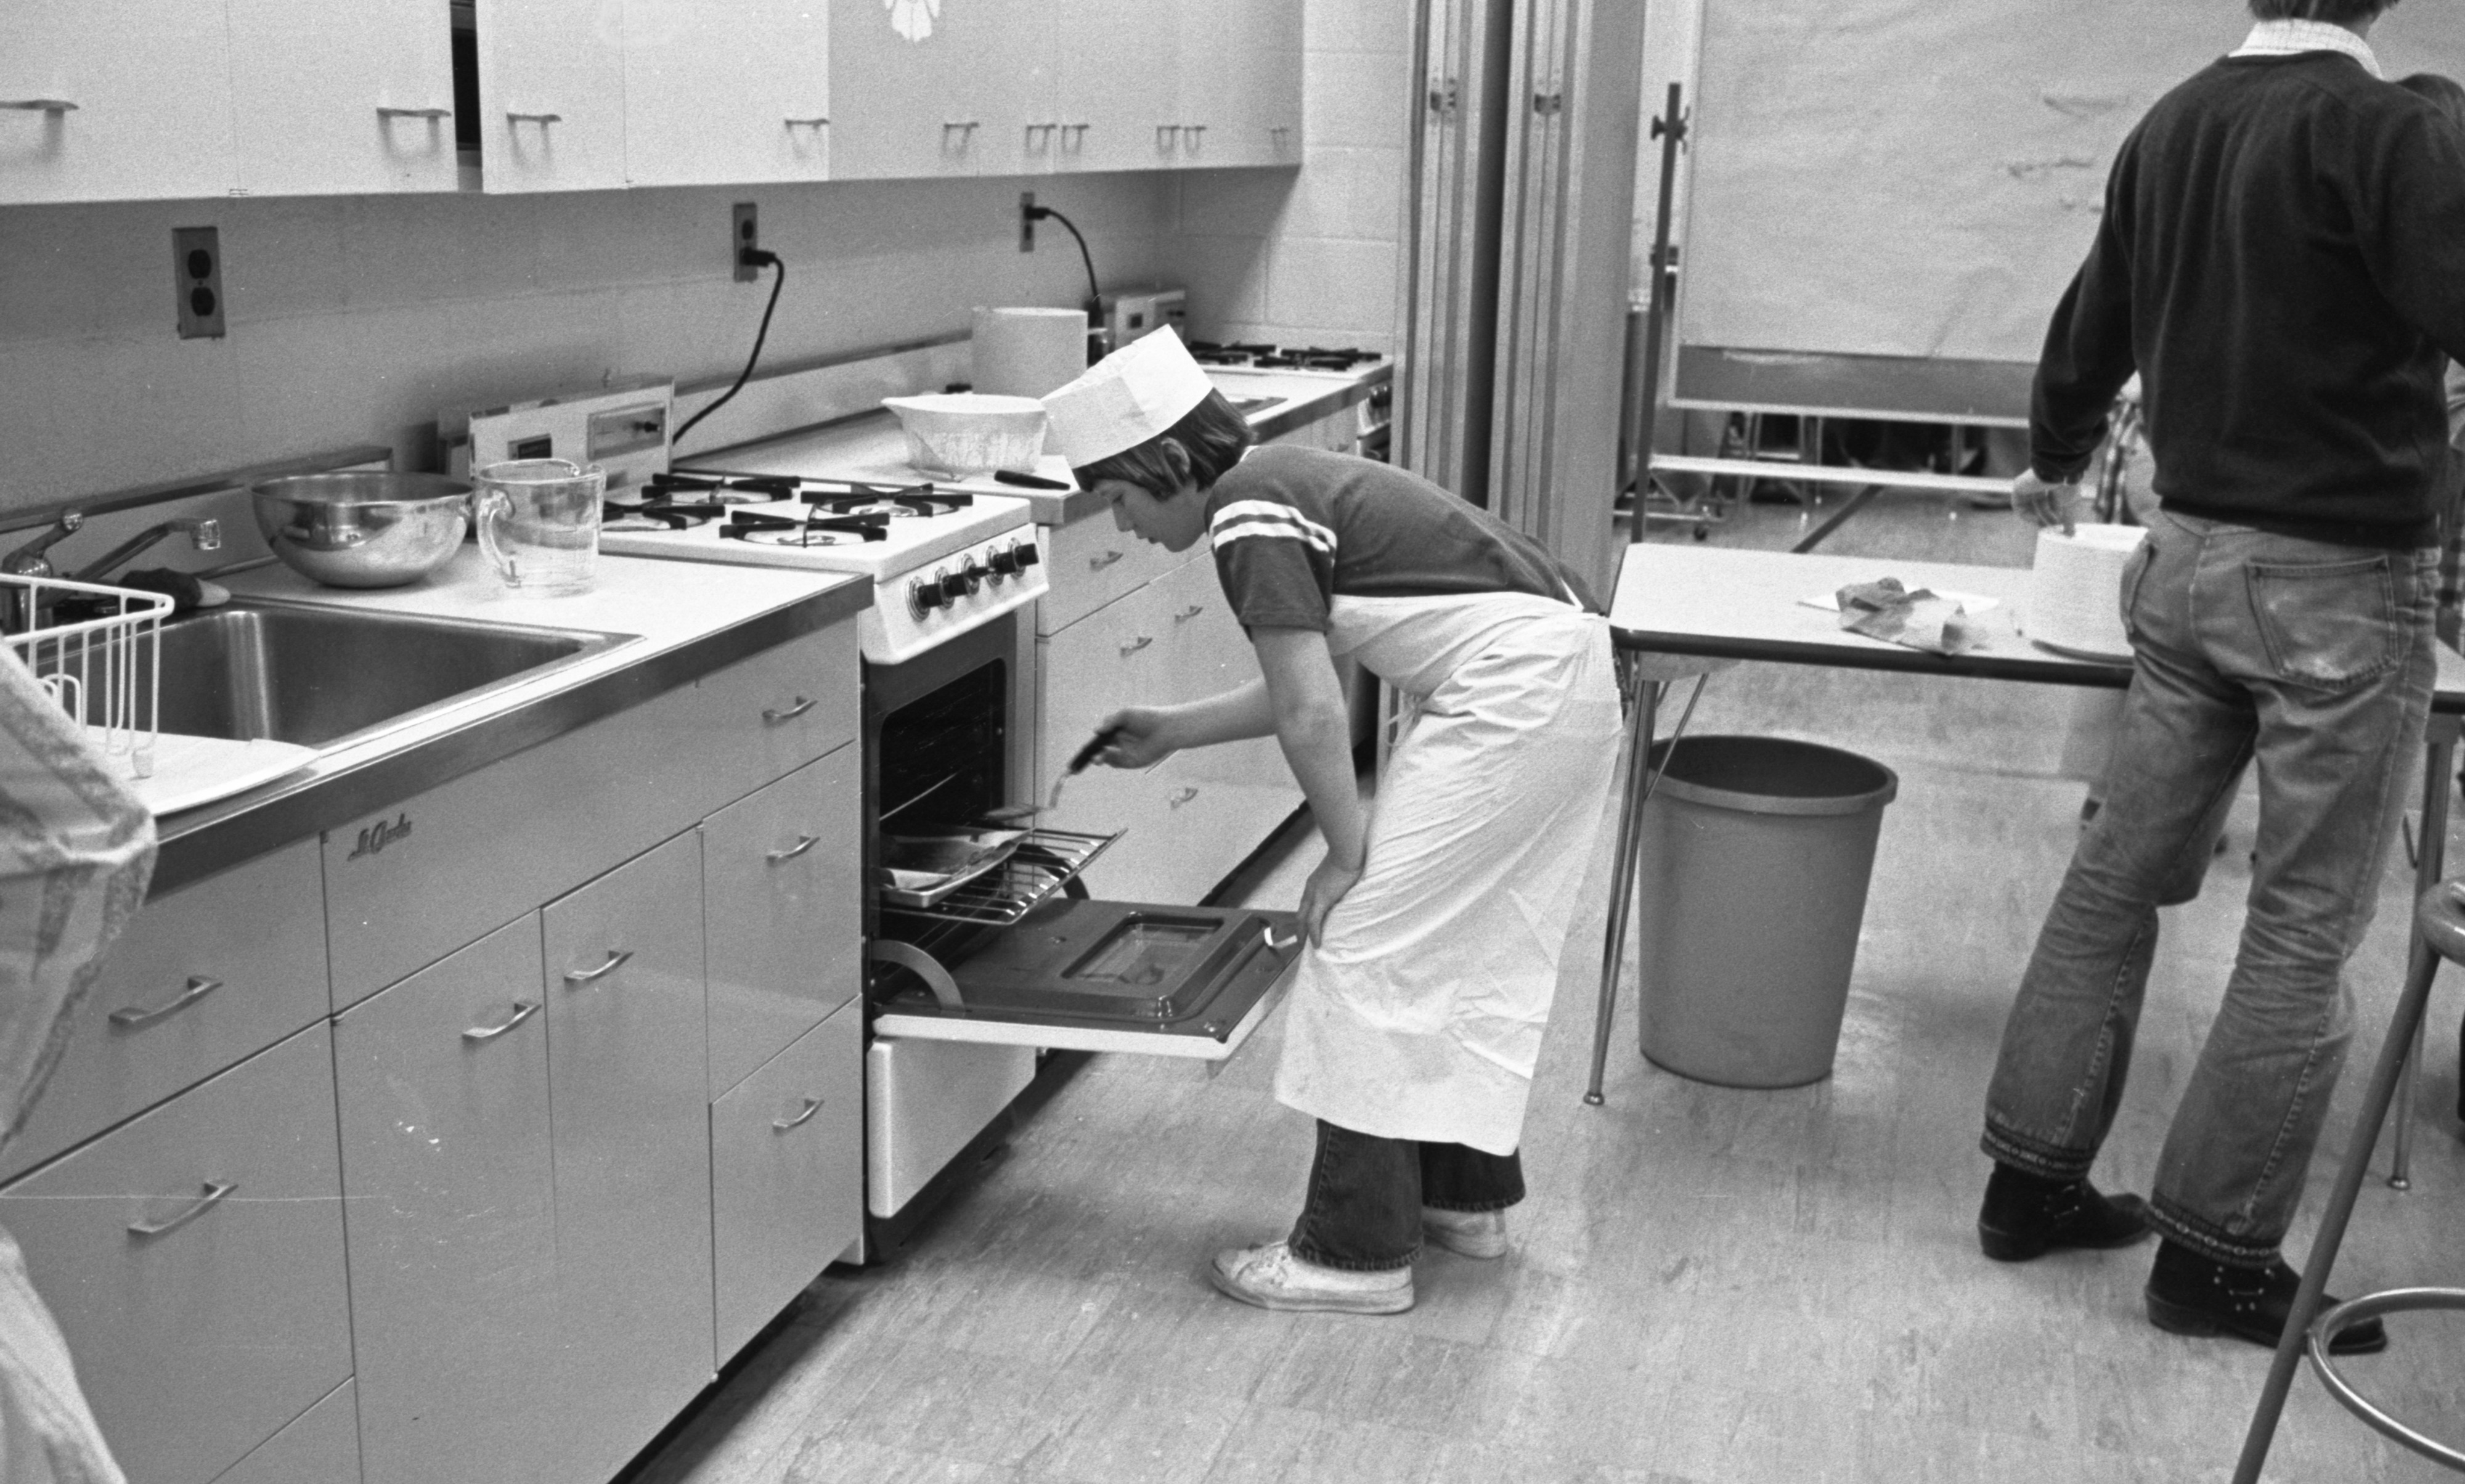 Rick Knorpp Cooks Sausage For The Project Scarlett 'Road Runner Inn' Restaurant, February 1973 image